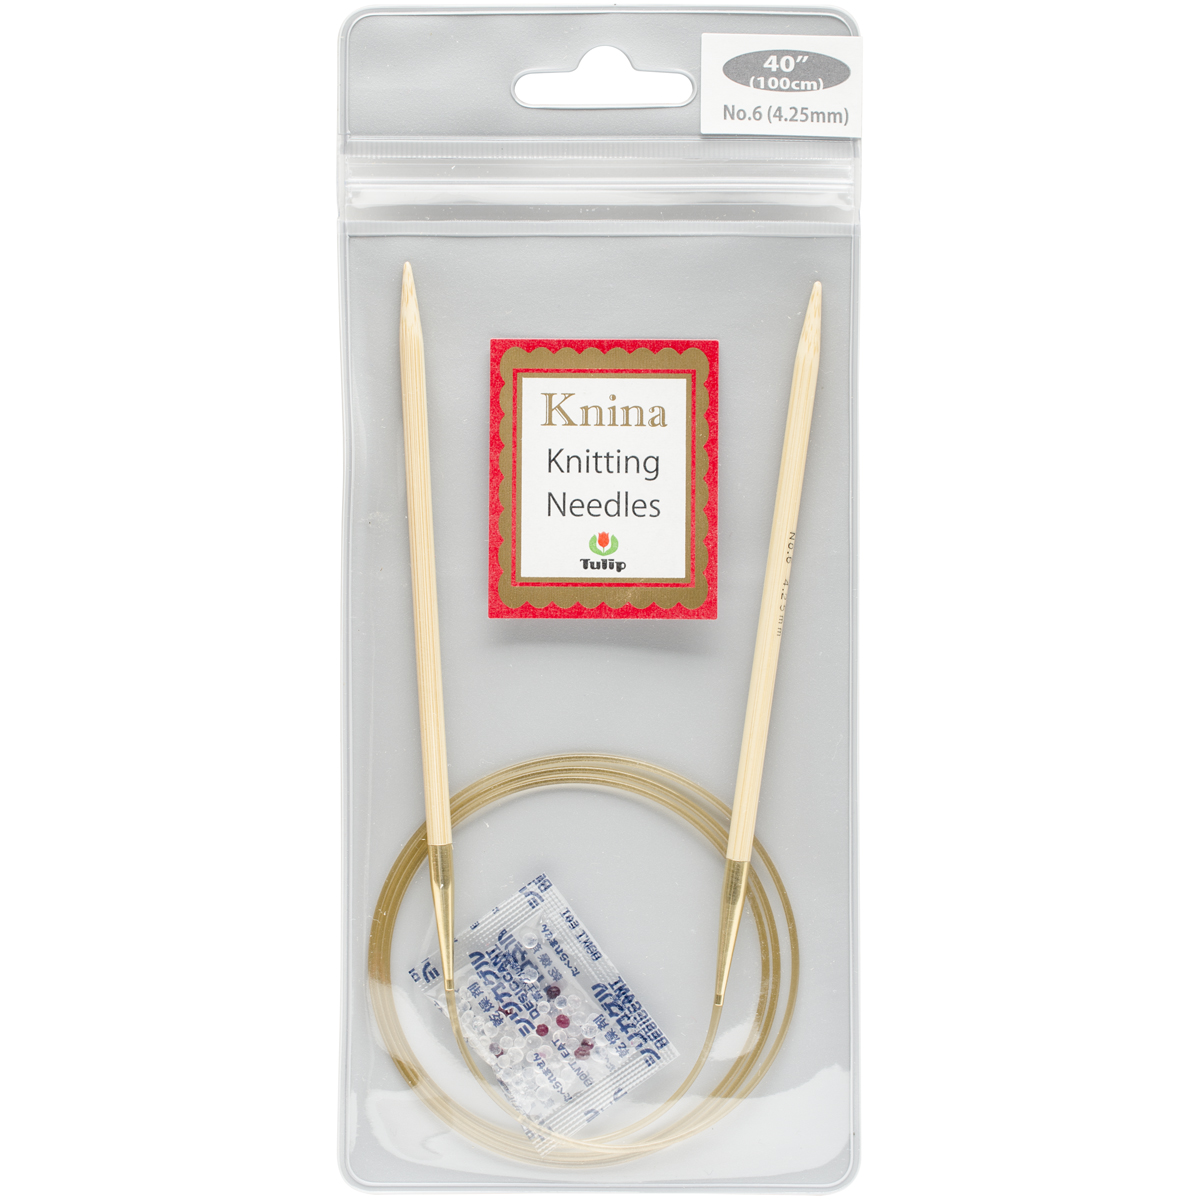 Knitting Warehouse Shipping : Tulip knina knitting needles in size mm click